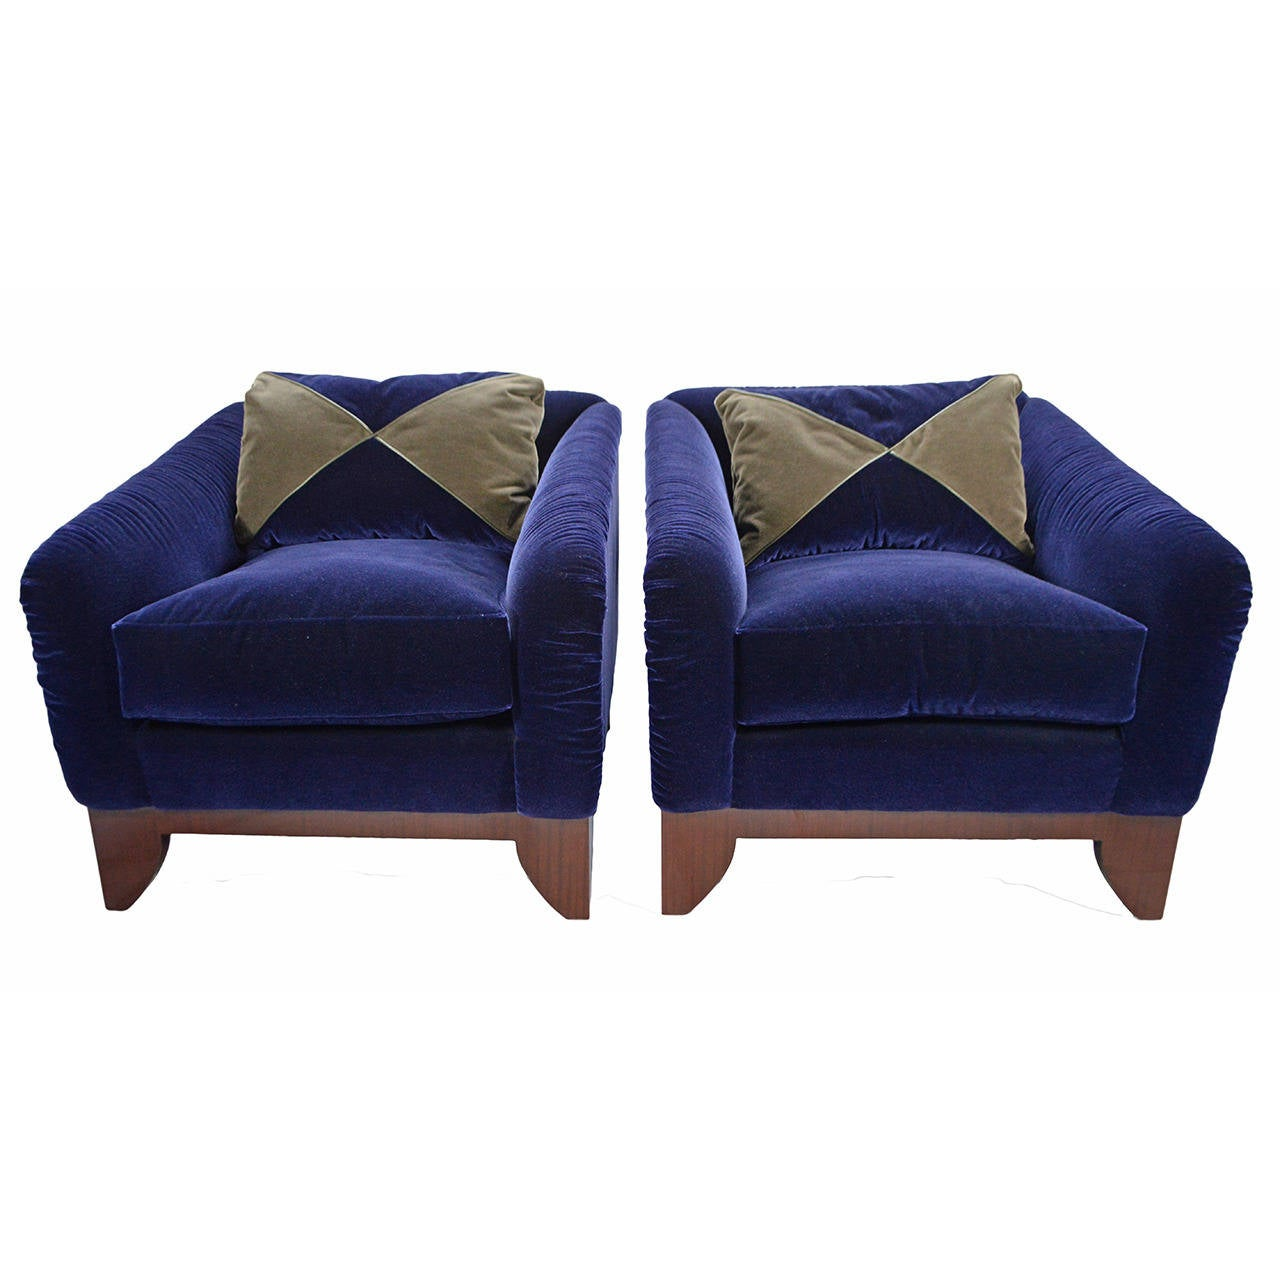 J Robert Scott Adriano Lounge Chairs For Sale At 1stdibs